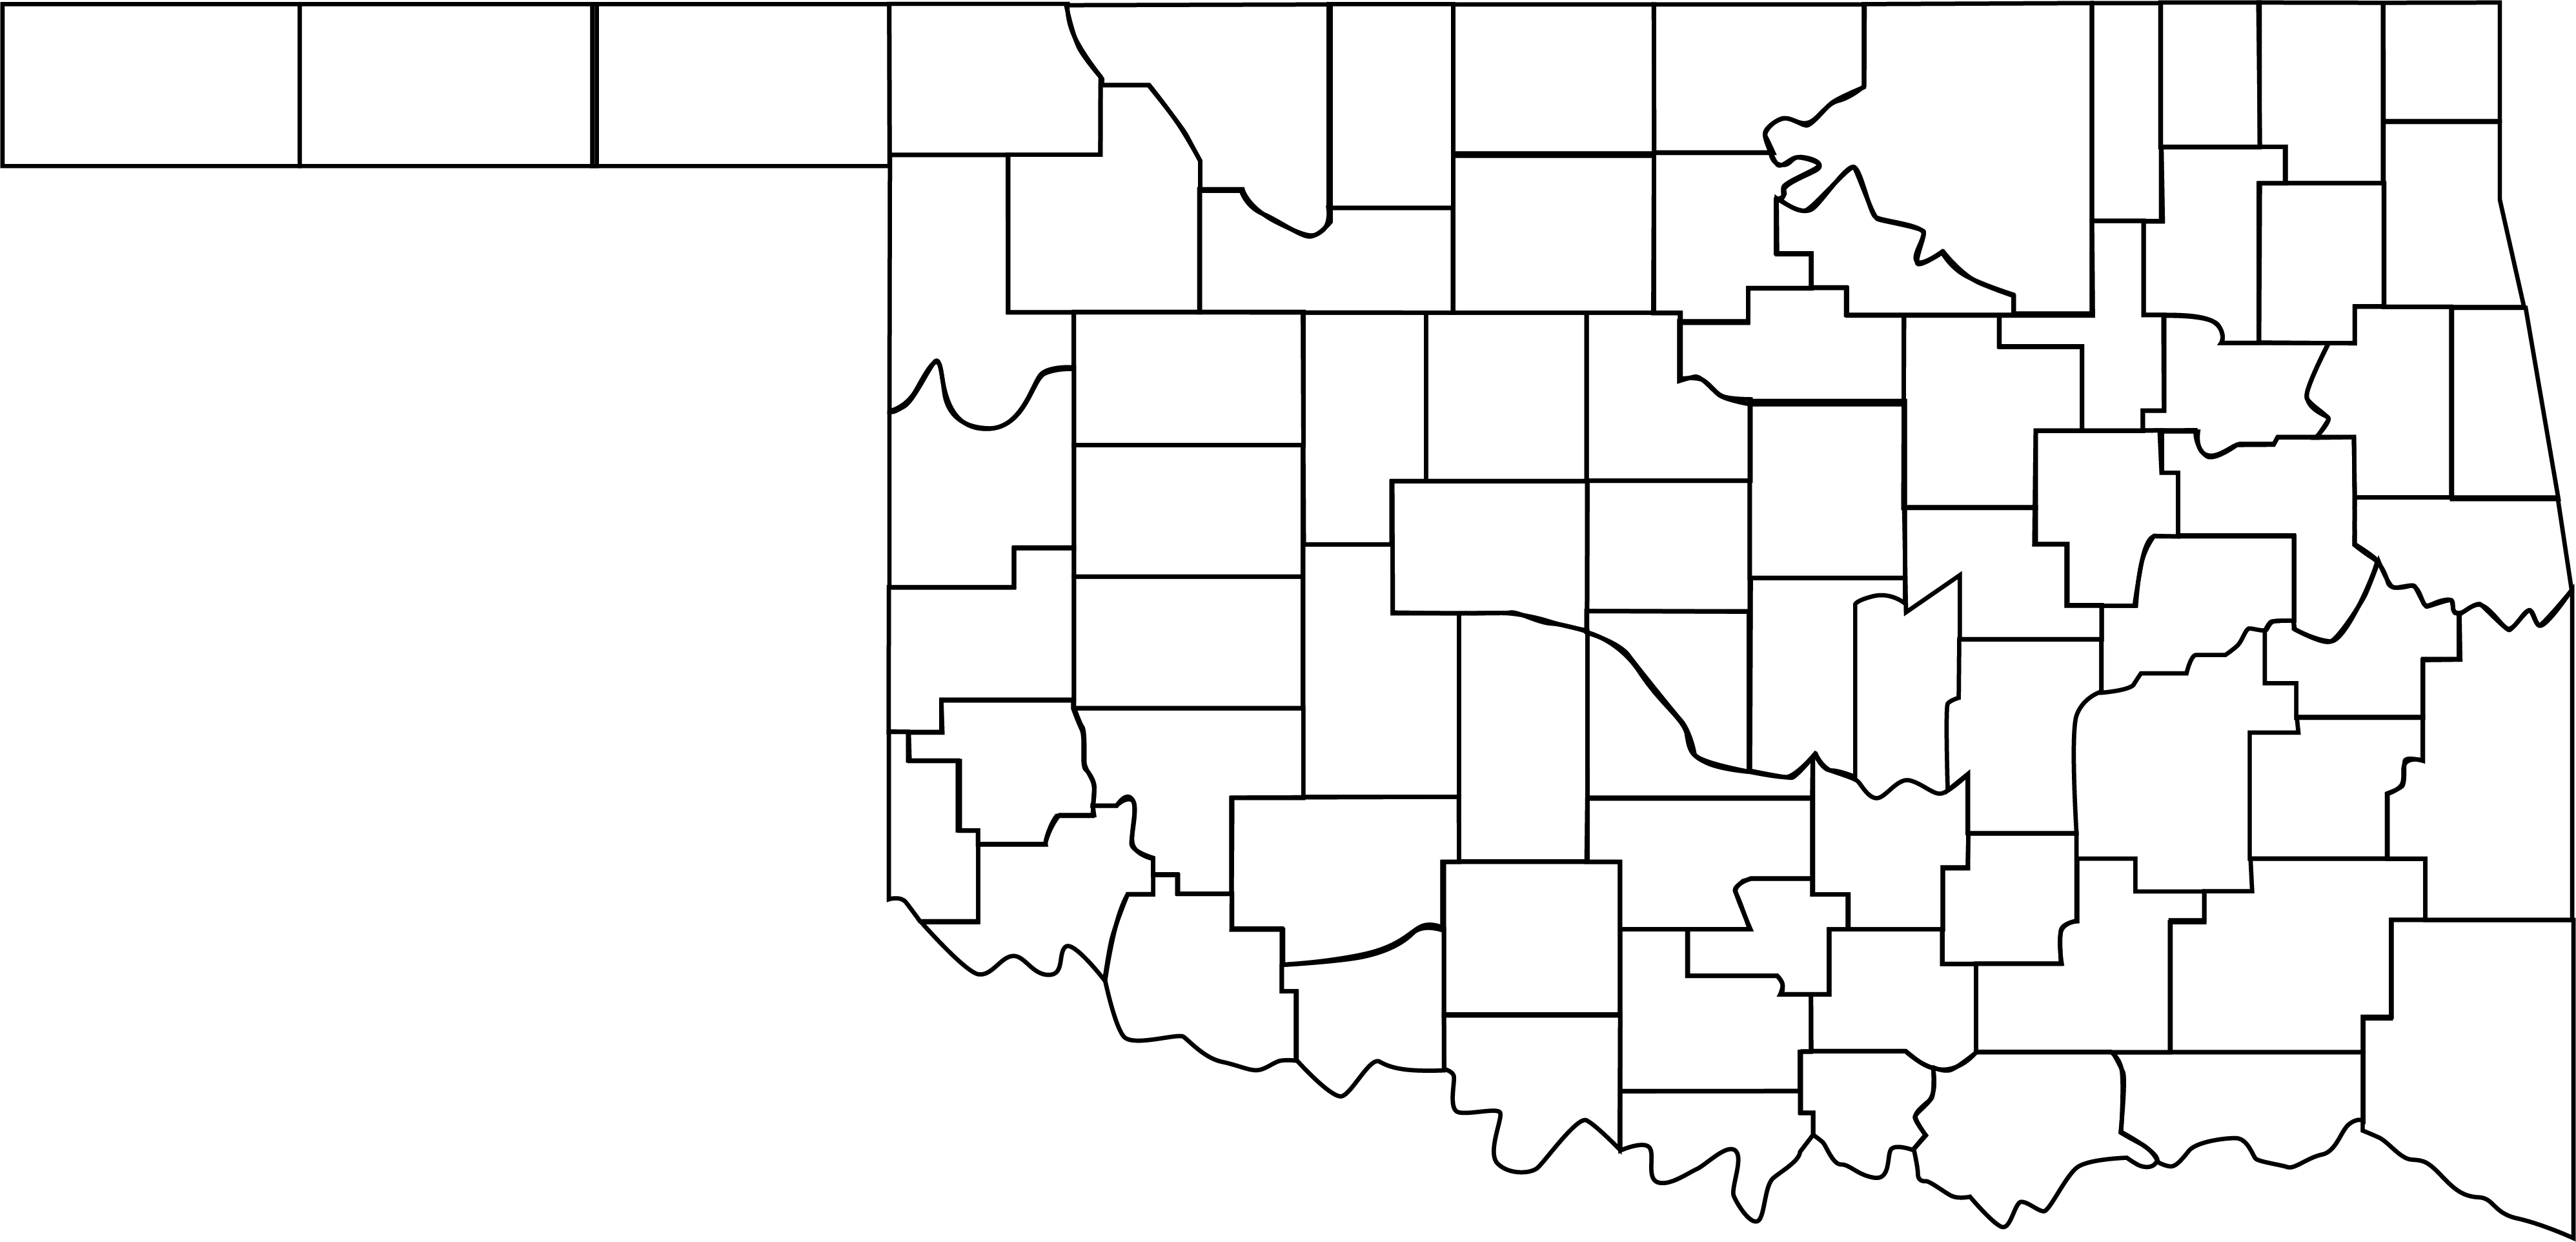 Oklahoma county map